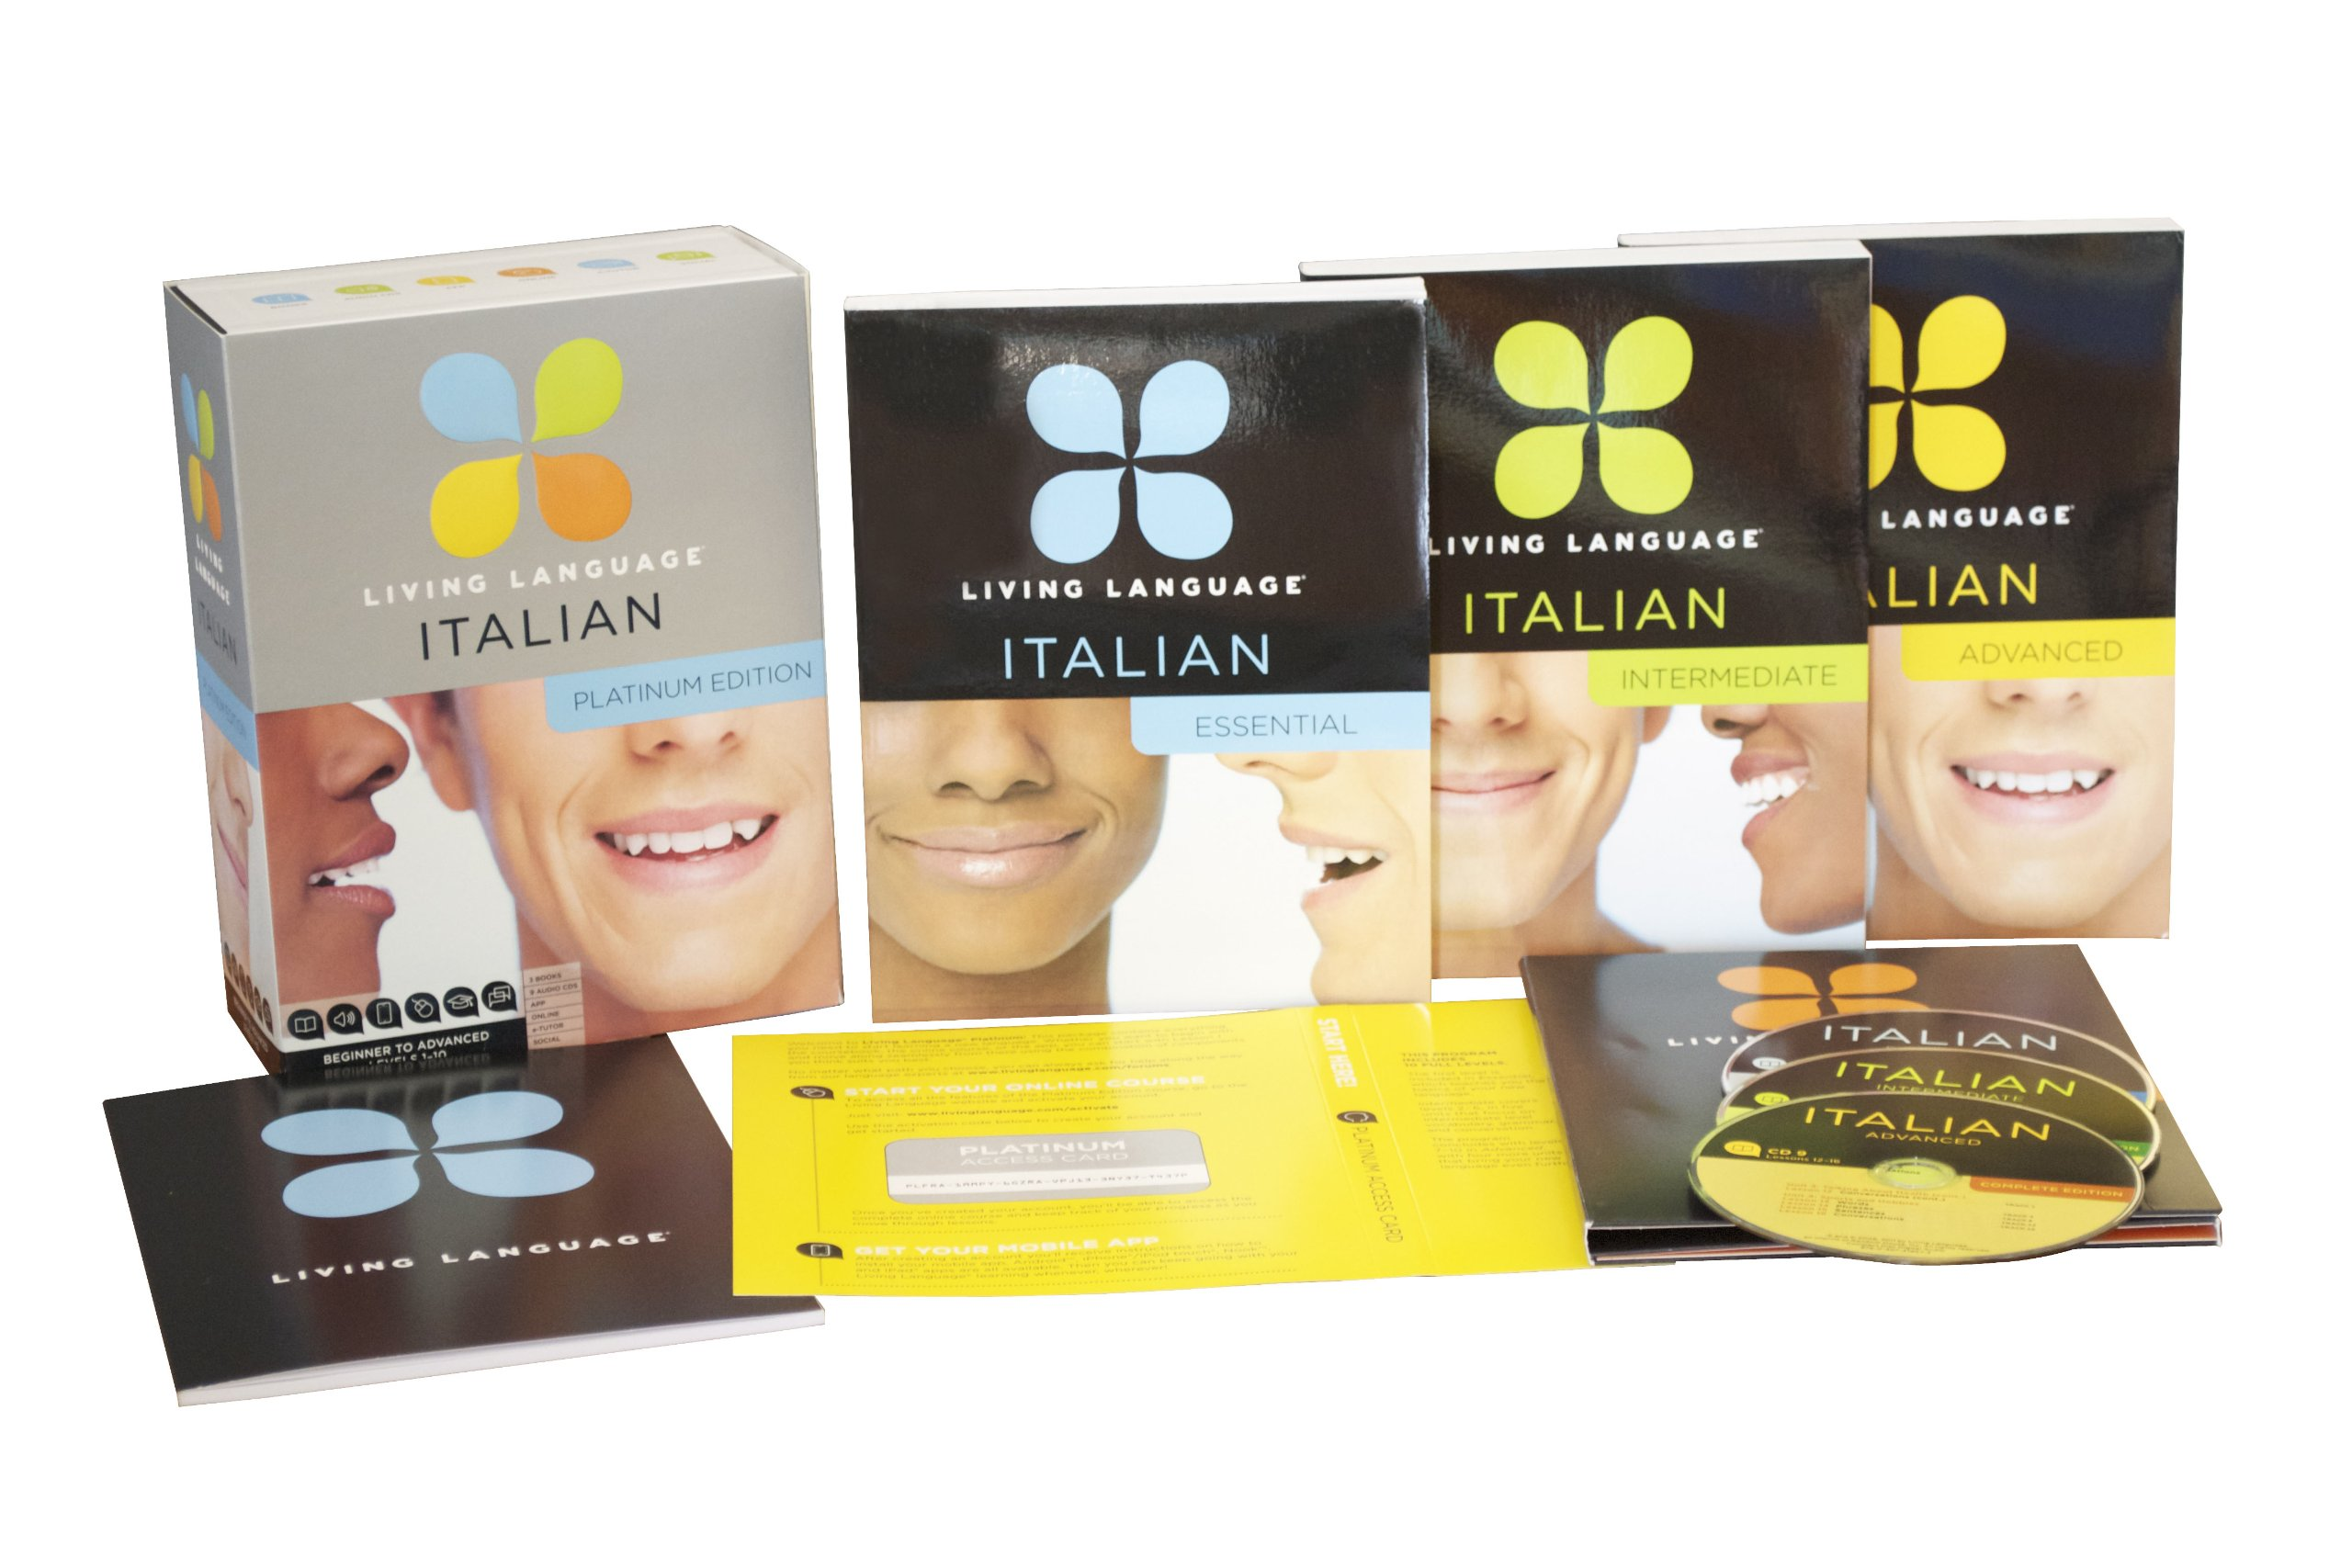 Living Language Italian, Platinum Edition: A complete beginner through advanced course, including 3 coursebooks, 9 audio CDs, complete online course, apps, and live e-Tutoring by Living Language